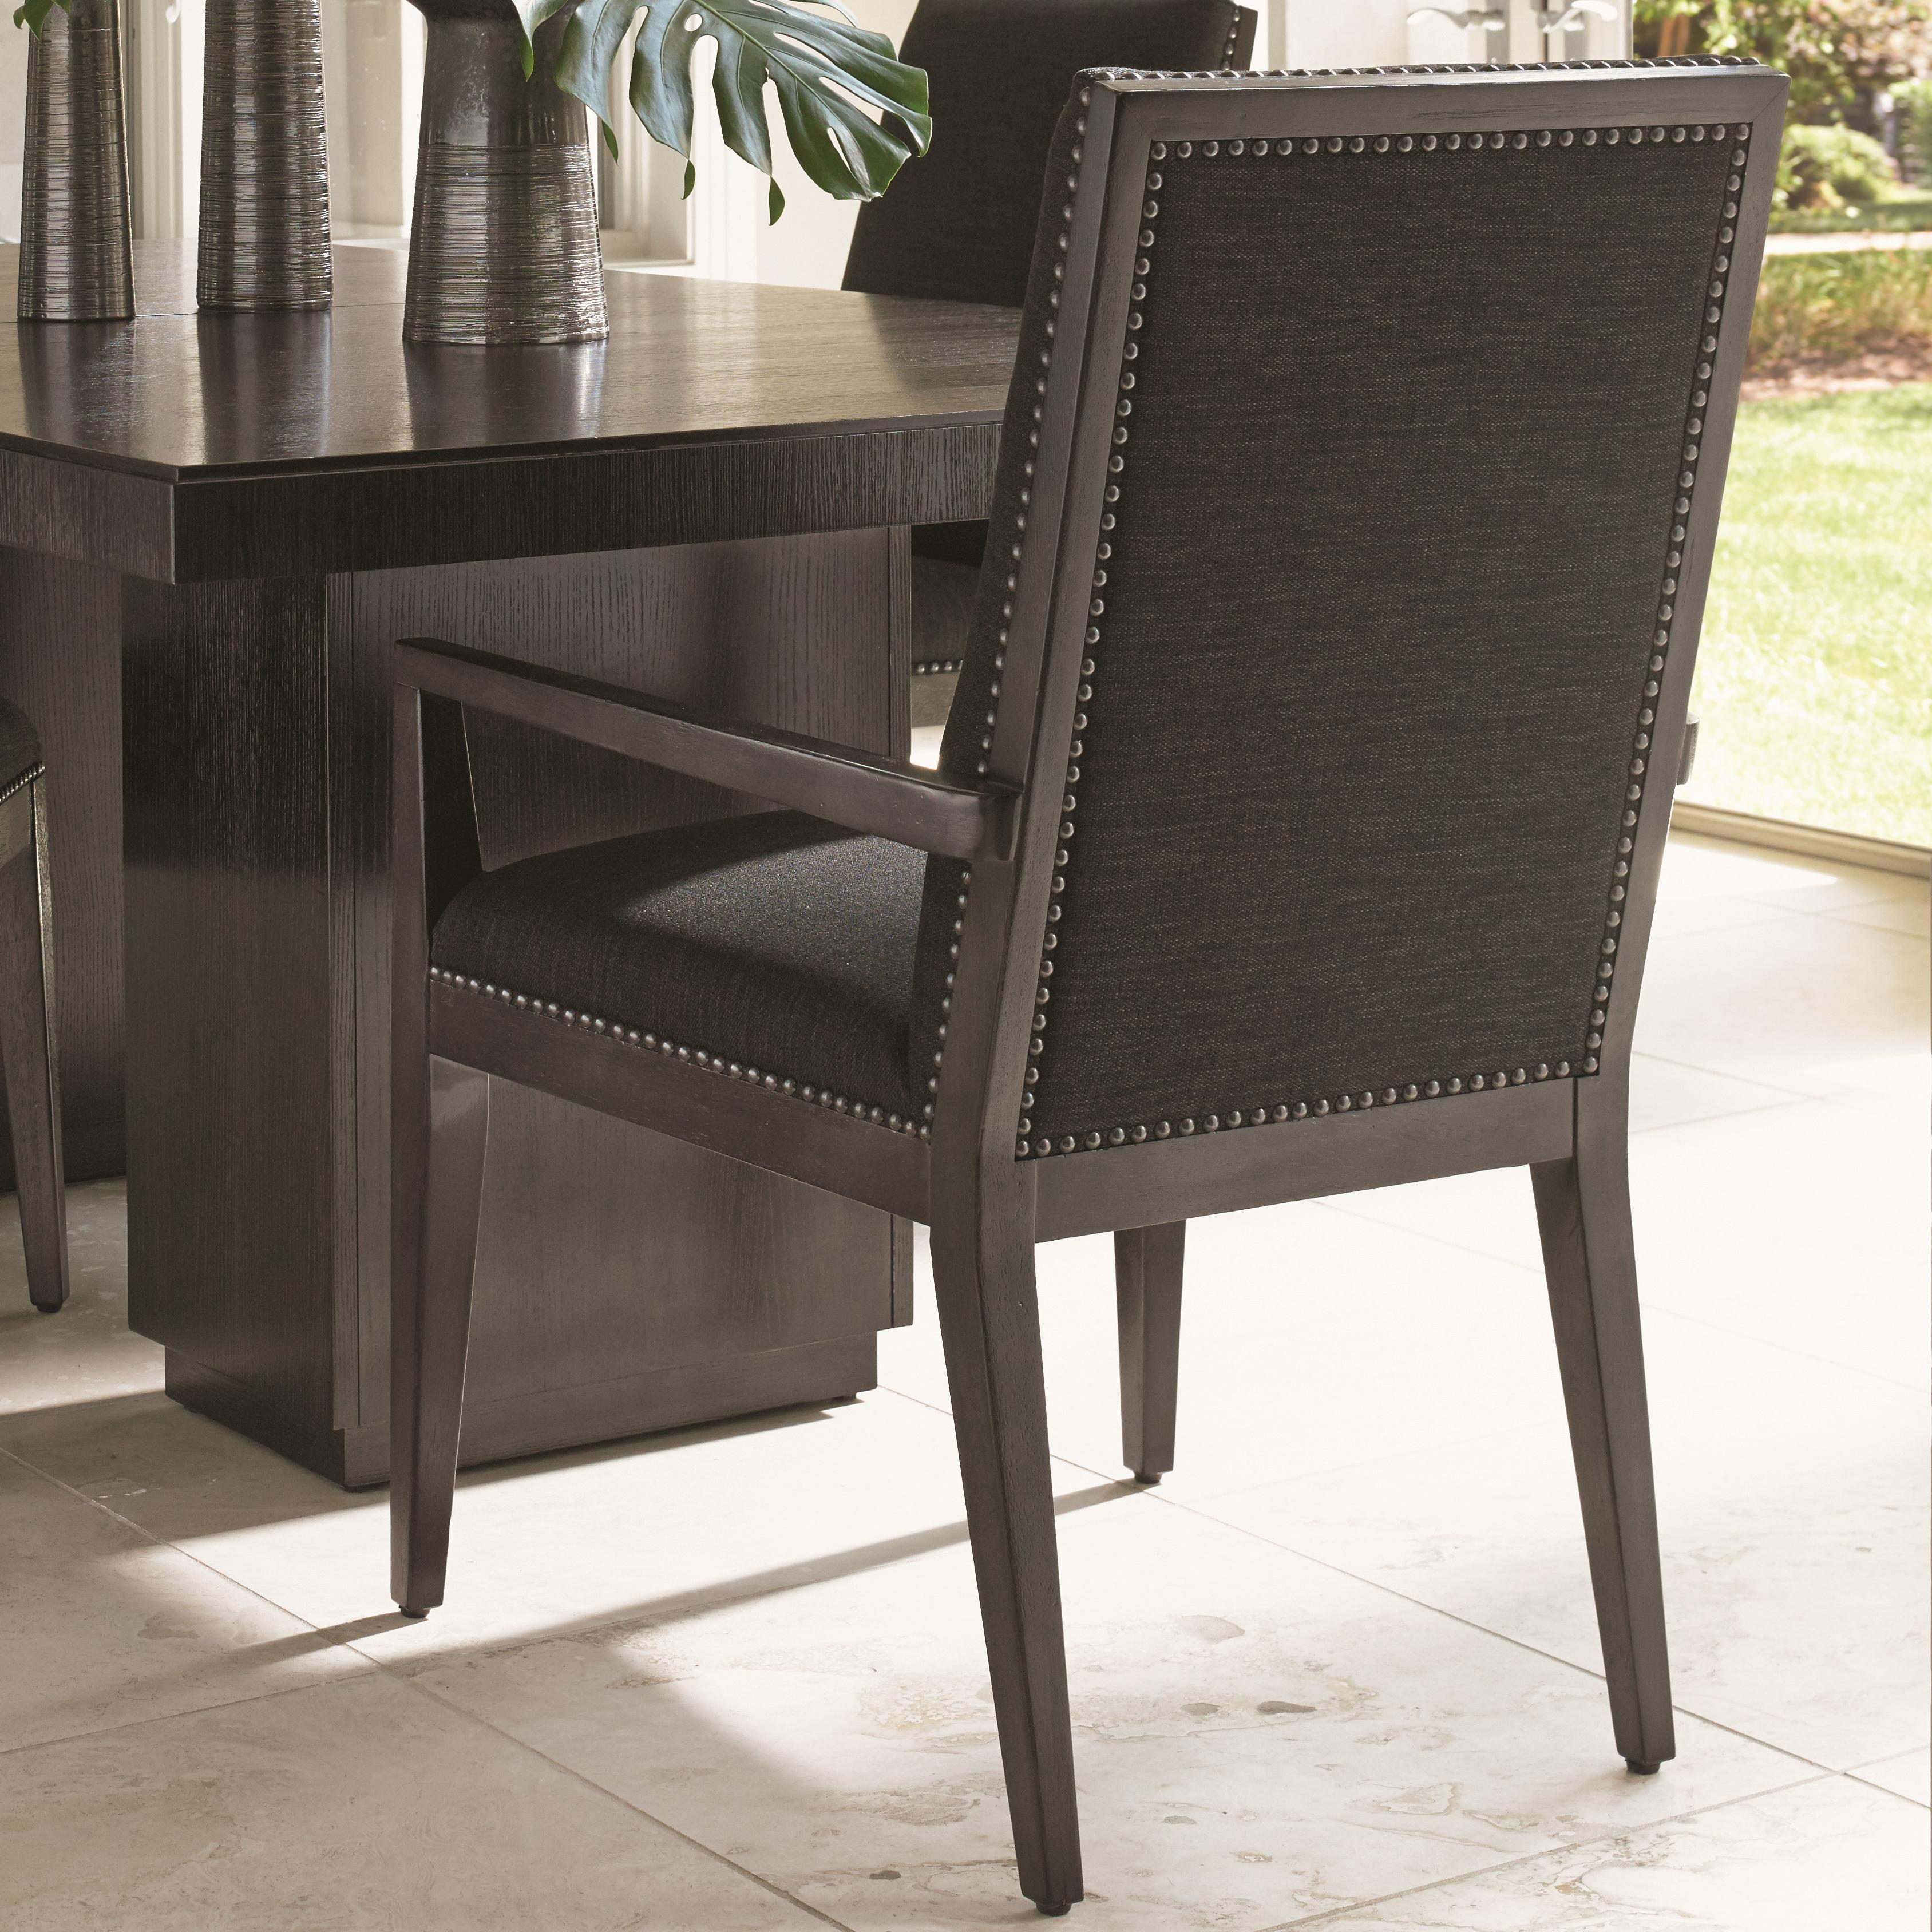 Carrera Vantage Upholstered Arm Chair by Lexington at Johnny Janosik